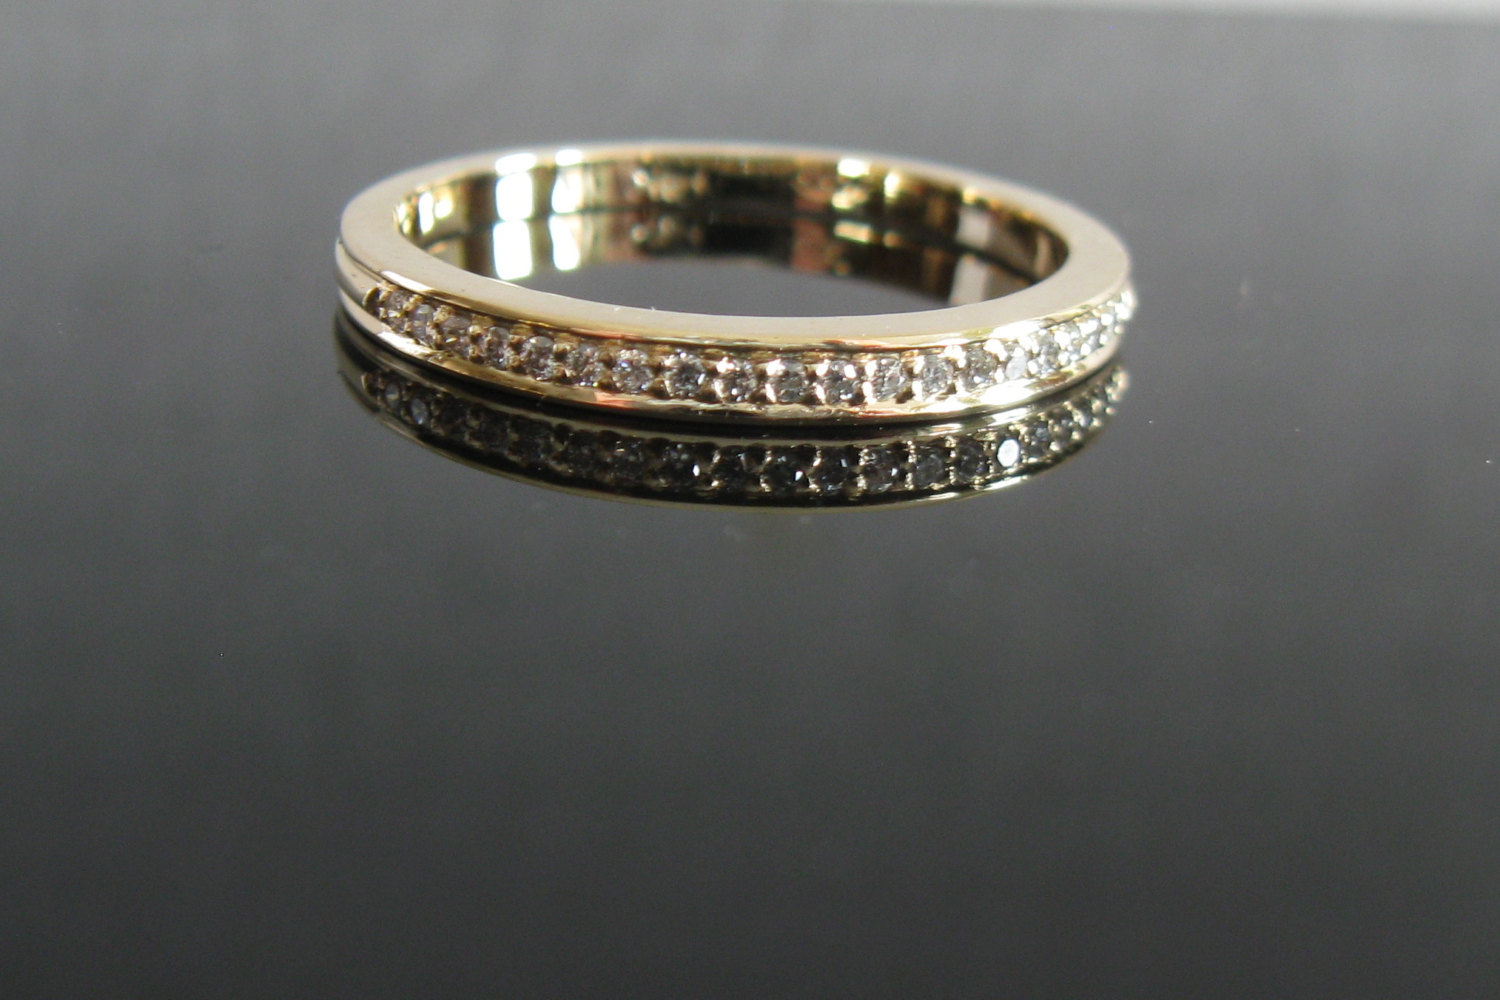 Micro Pave Diamond Eternity Ring 2mm In 14k Gold, Handmade Diamond Band, Tiny Diamond Wedding Ring, Engagement Ring, Narrow Wedding Band From Arpelc With 2017 Full Micropavé Diamond Wedding Bands (View 16 of 25)